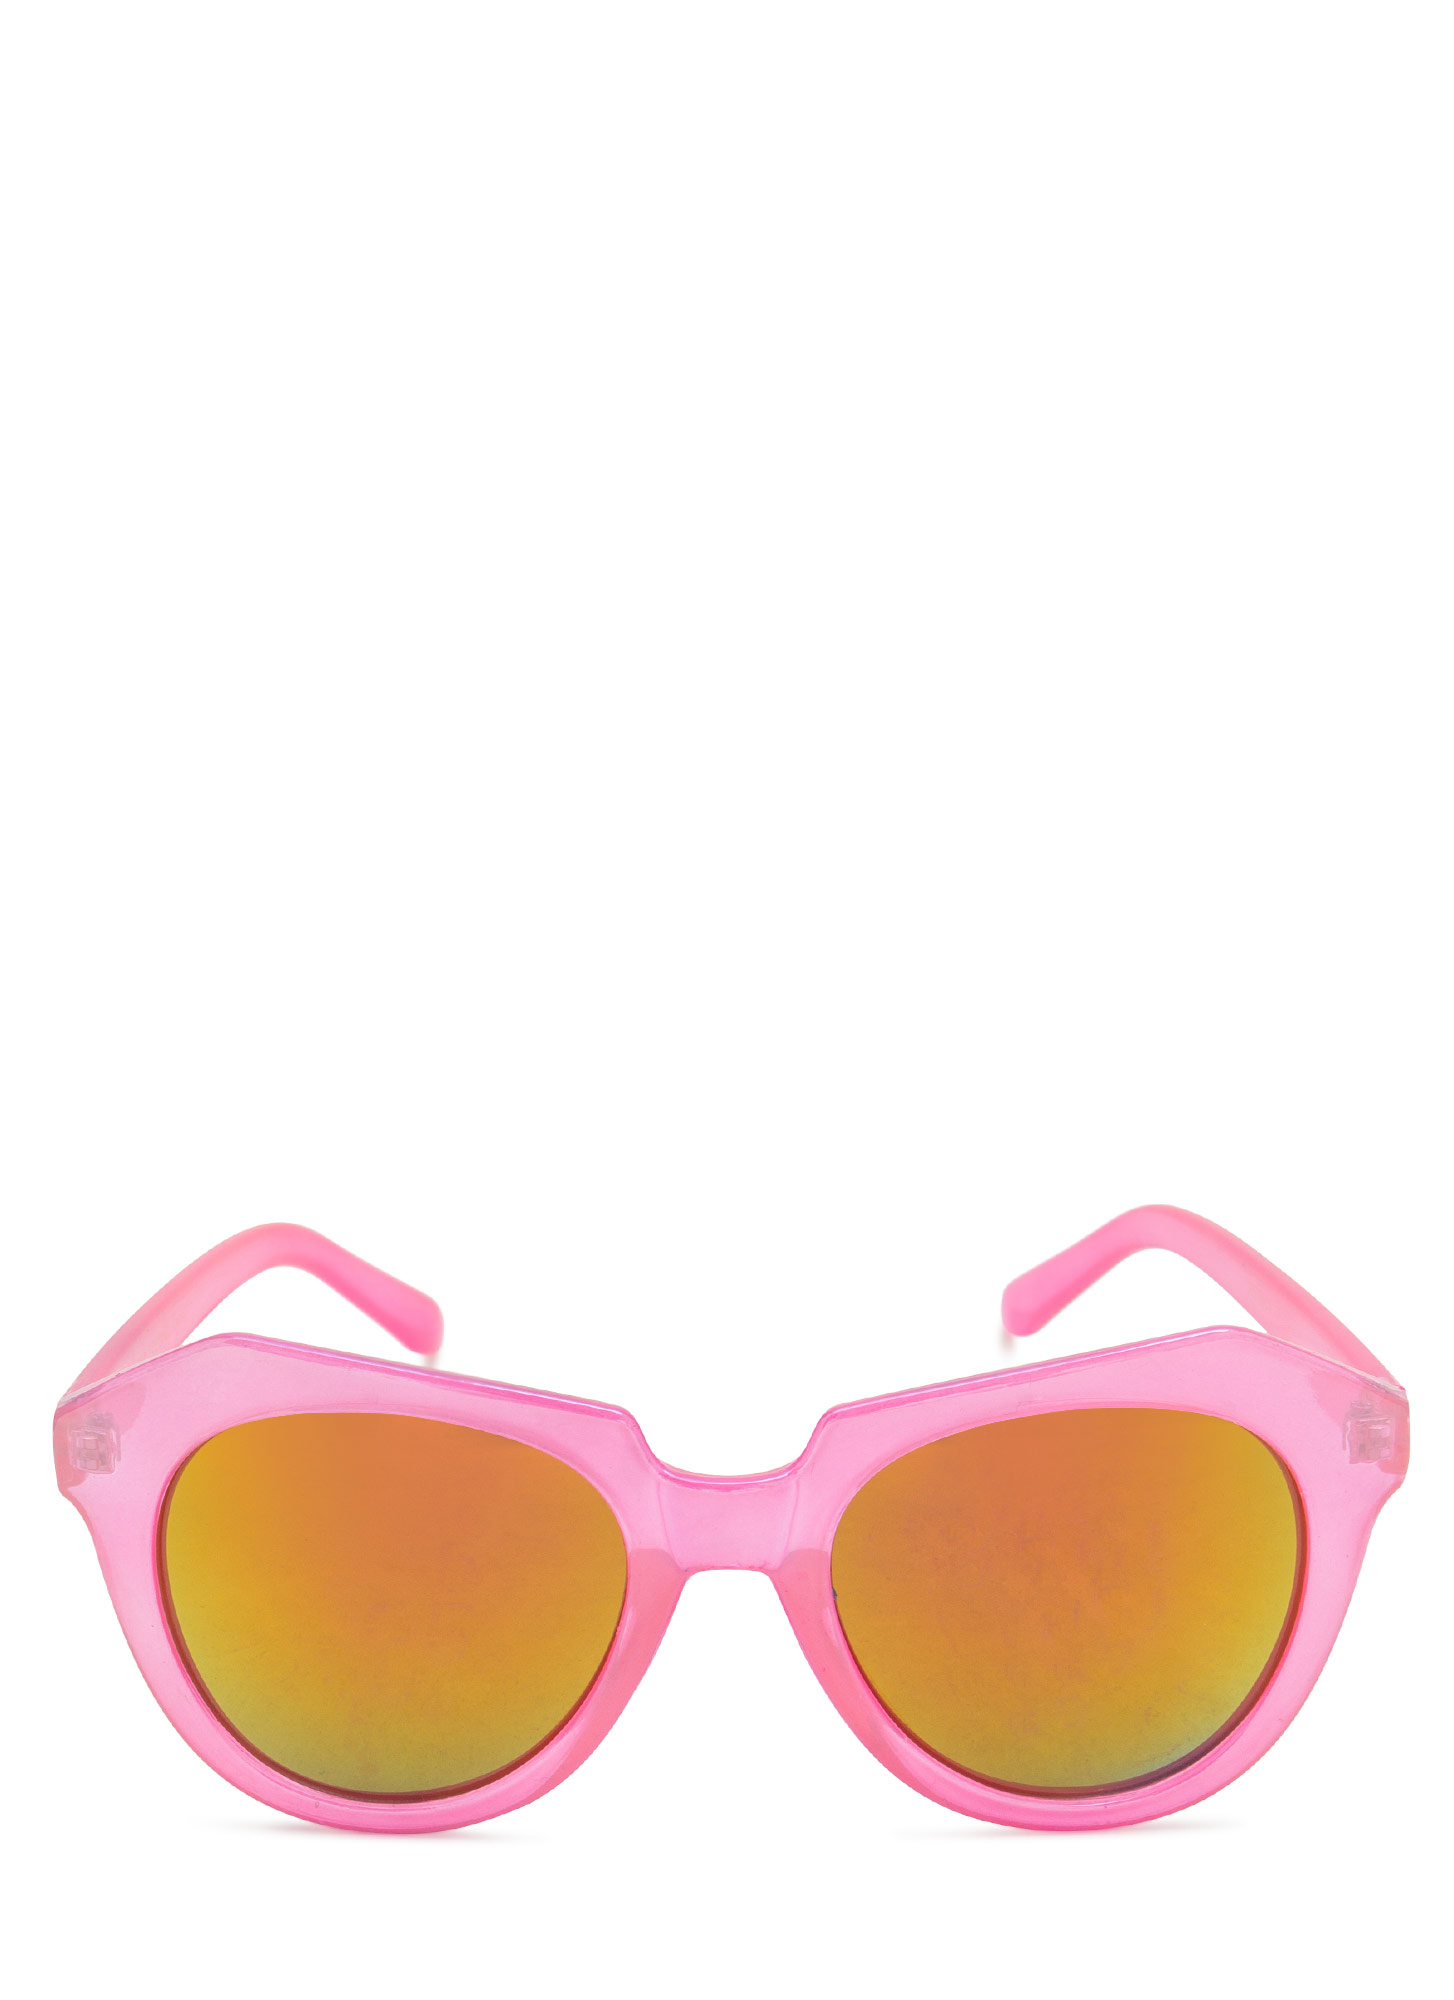 Angled Look Mirrored Sunglasses PINK